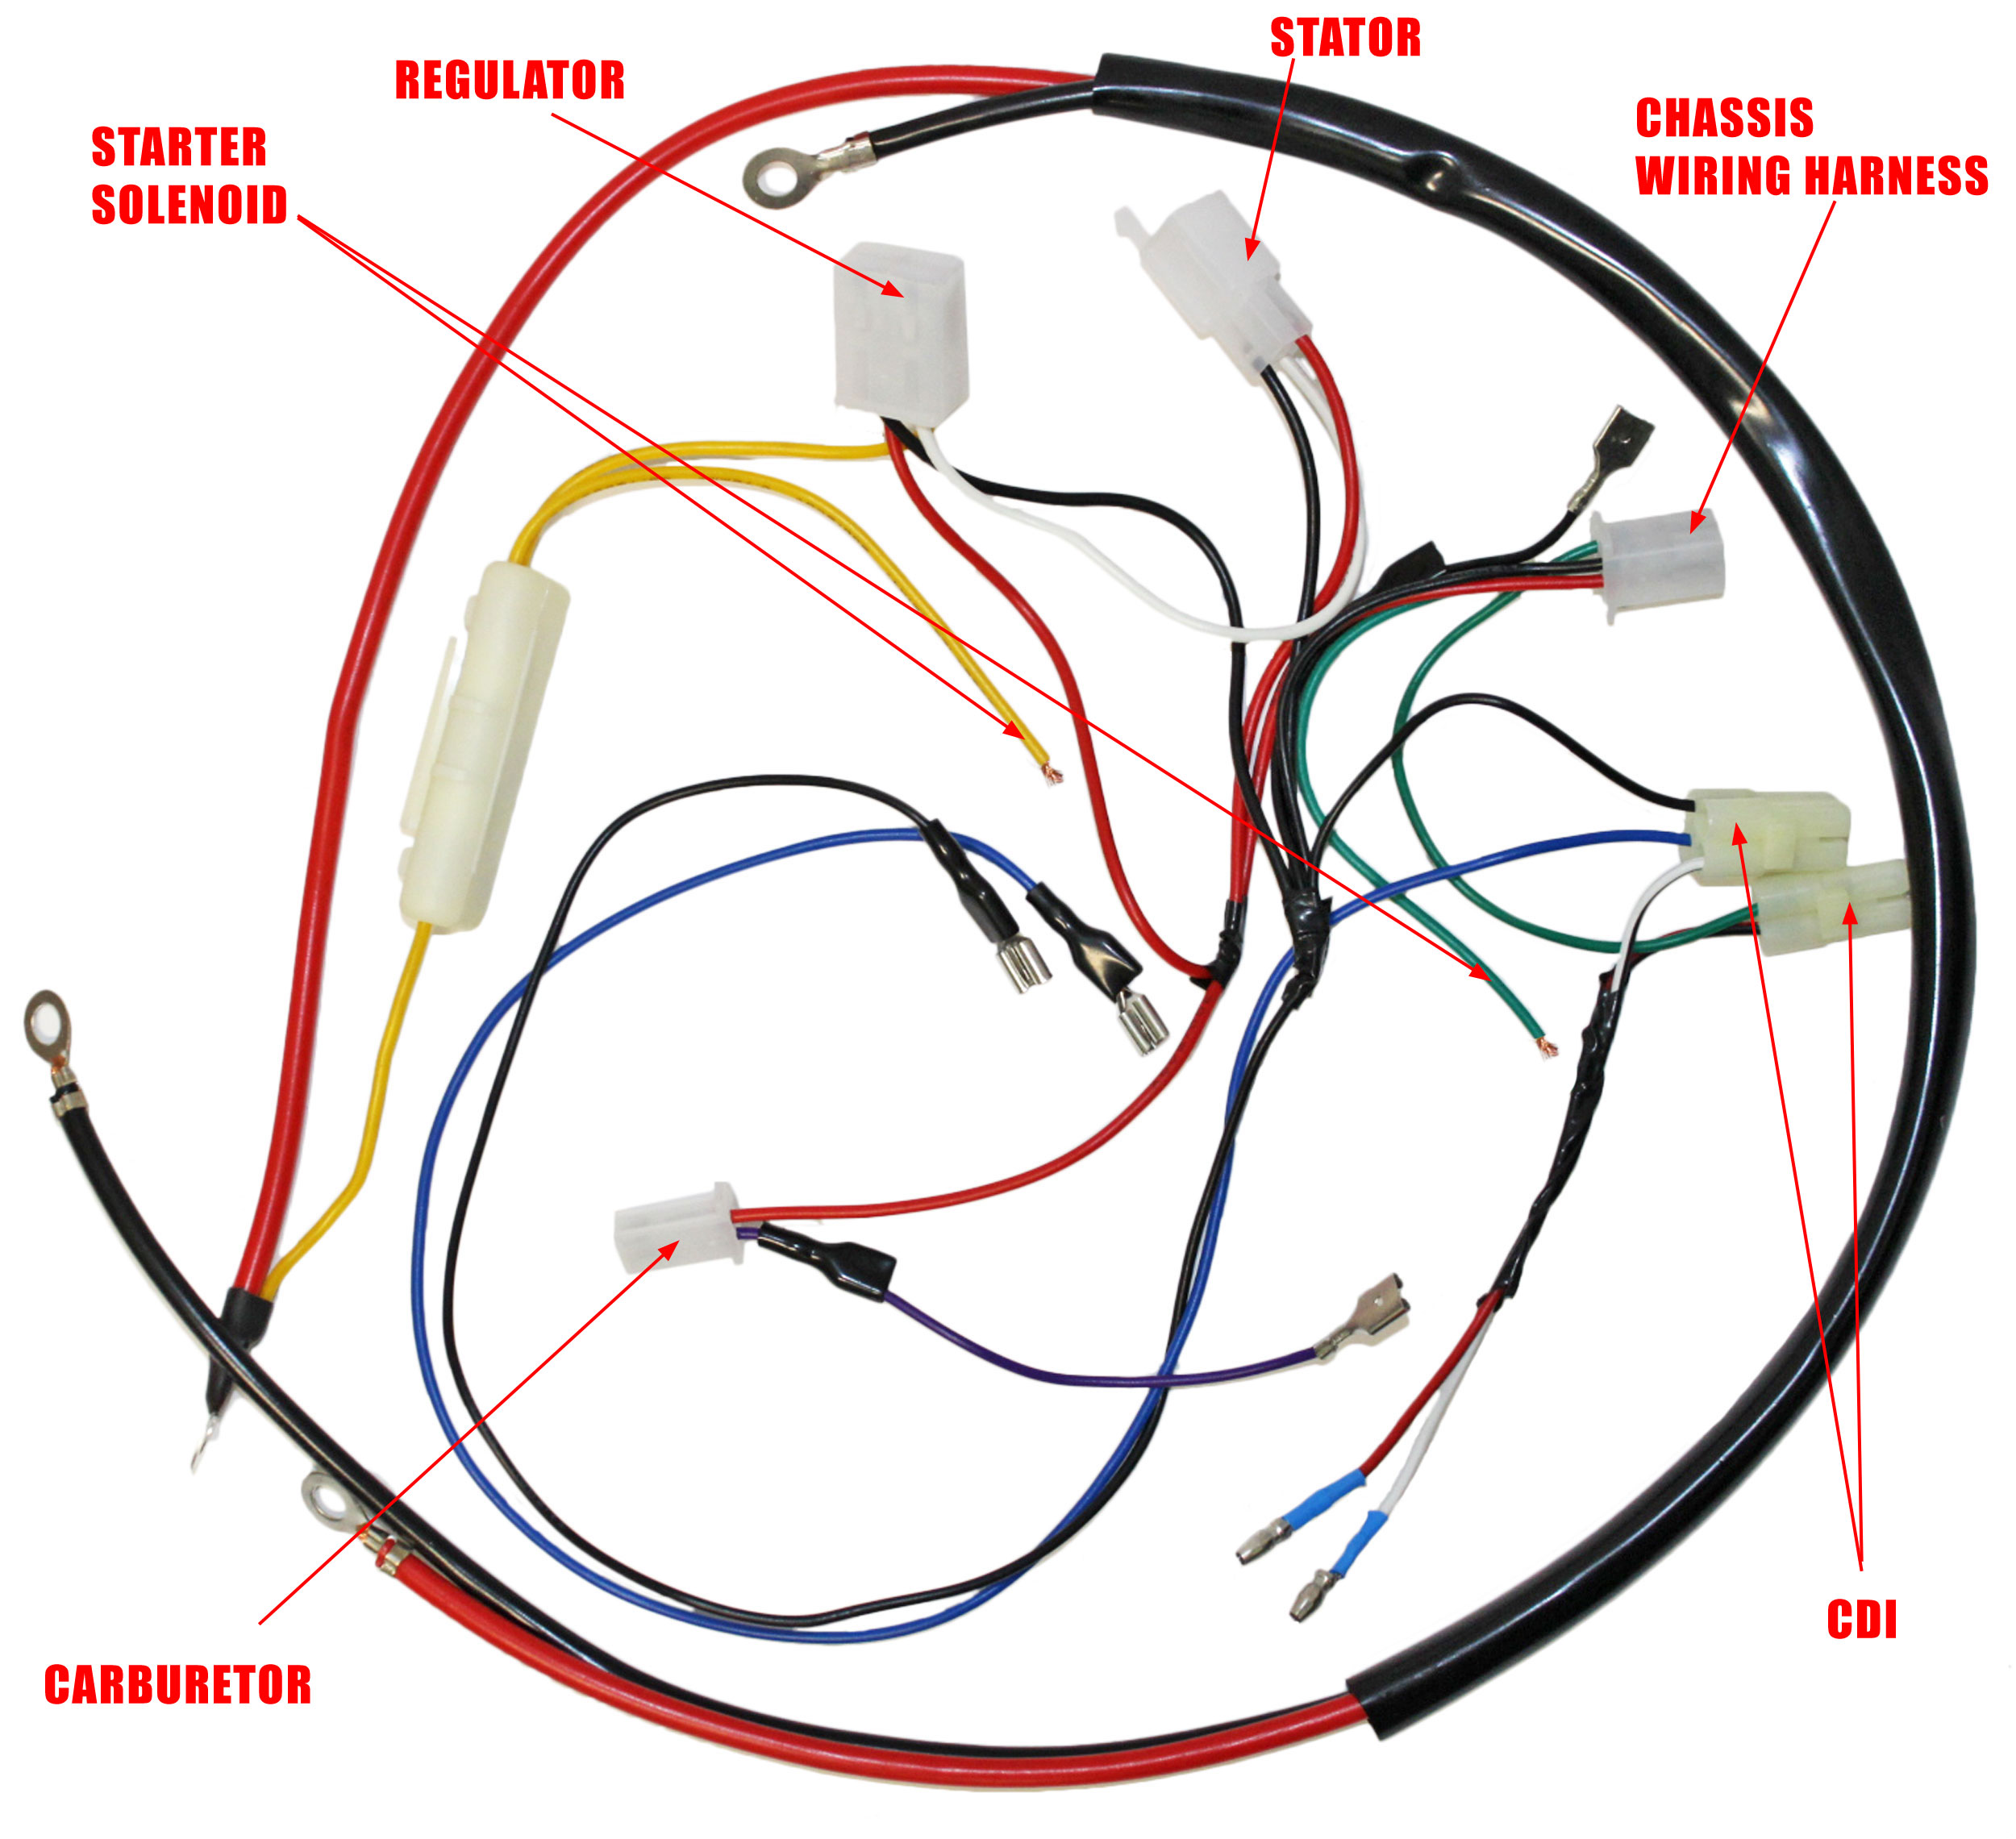 engine wiring harness for gy6 150cc engine 05711a bmi. Black Bedroom Furniture Sets. Home Design Ideas